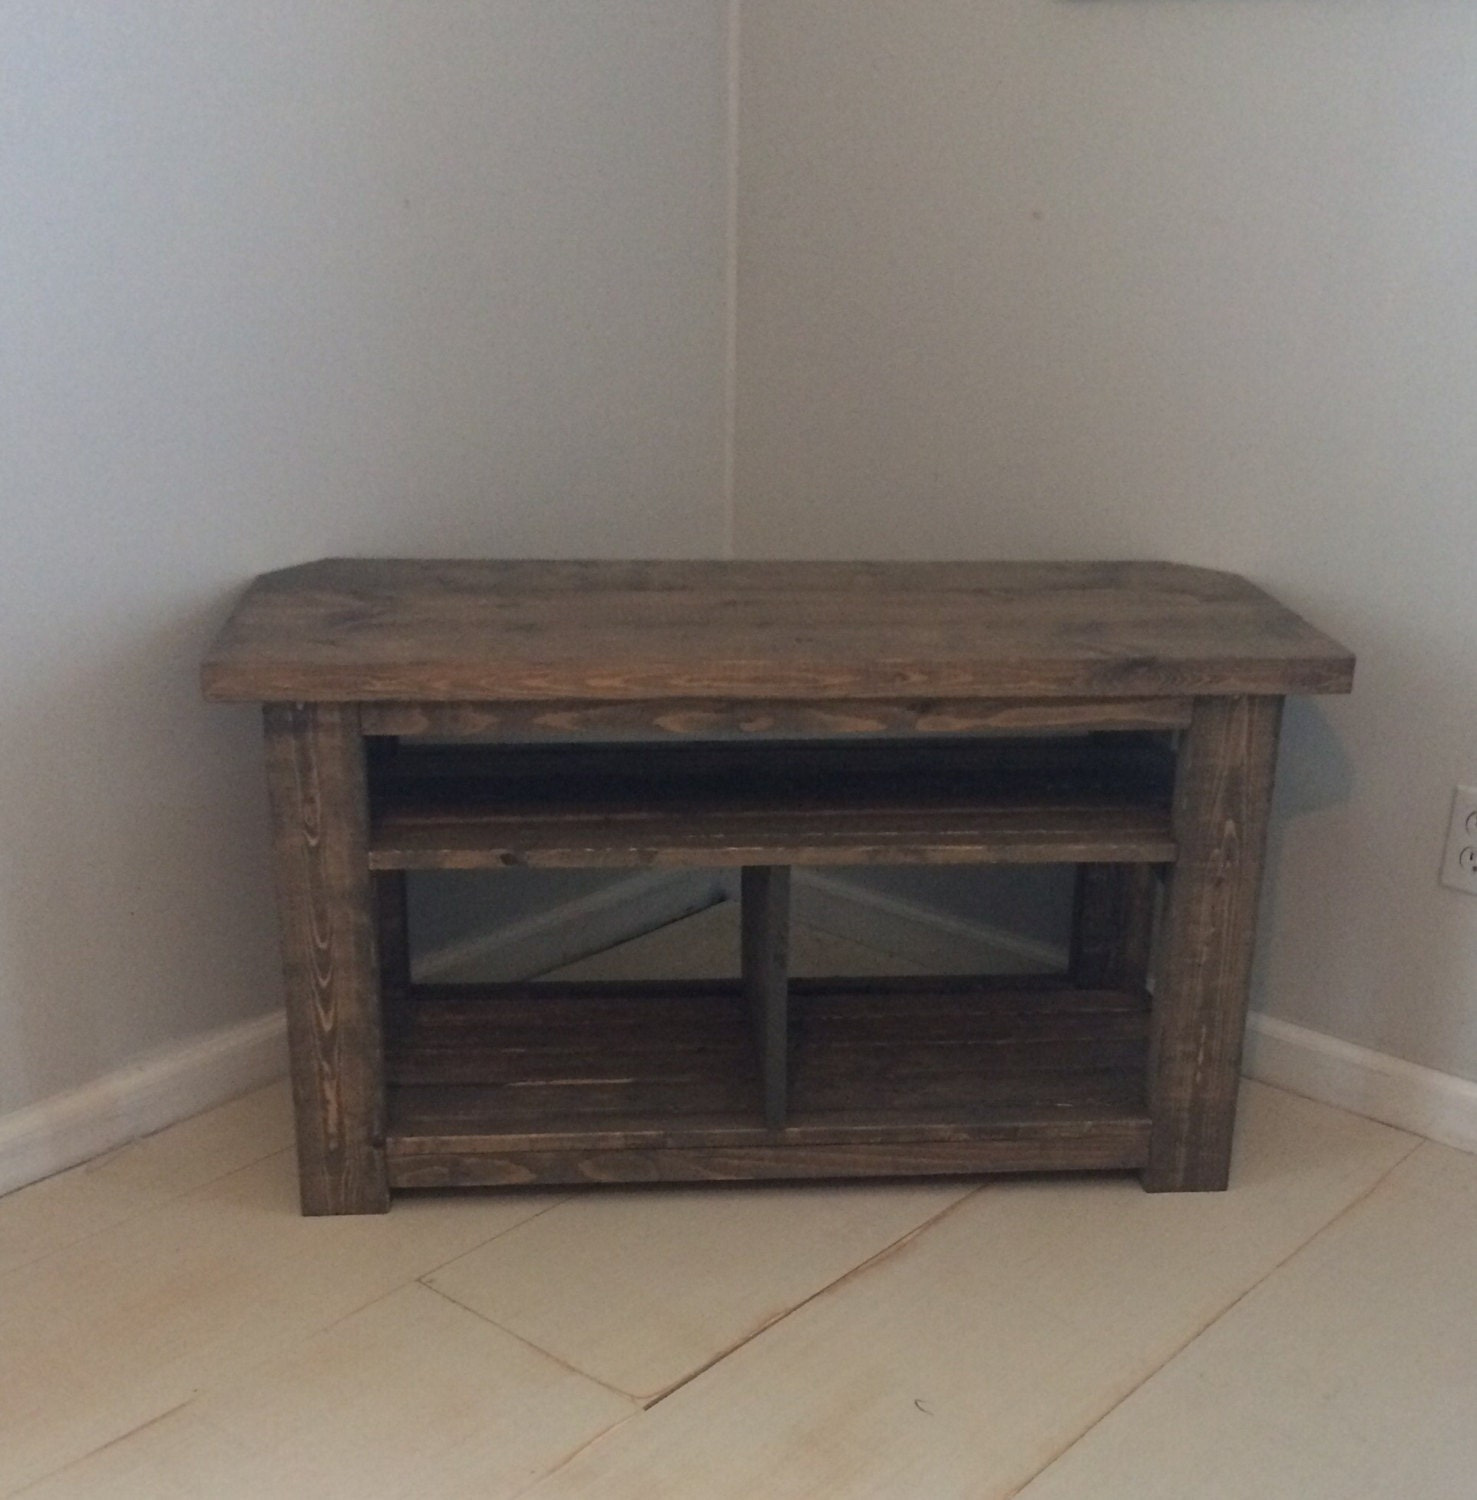 42 rustic corner tv stand console wood console table. Black Bedroom Furniture Sets. Home Design Ideas